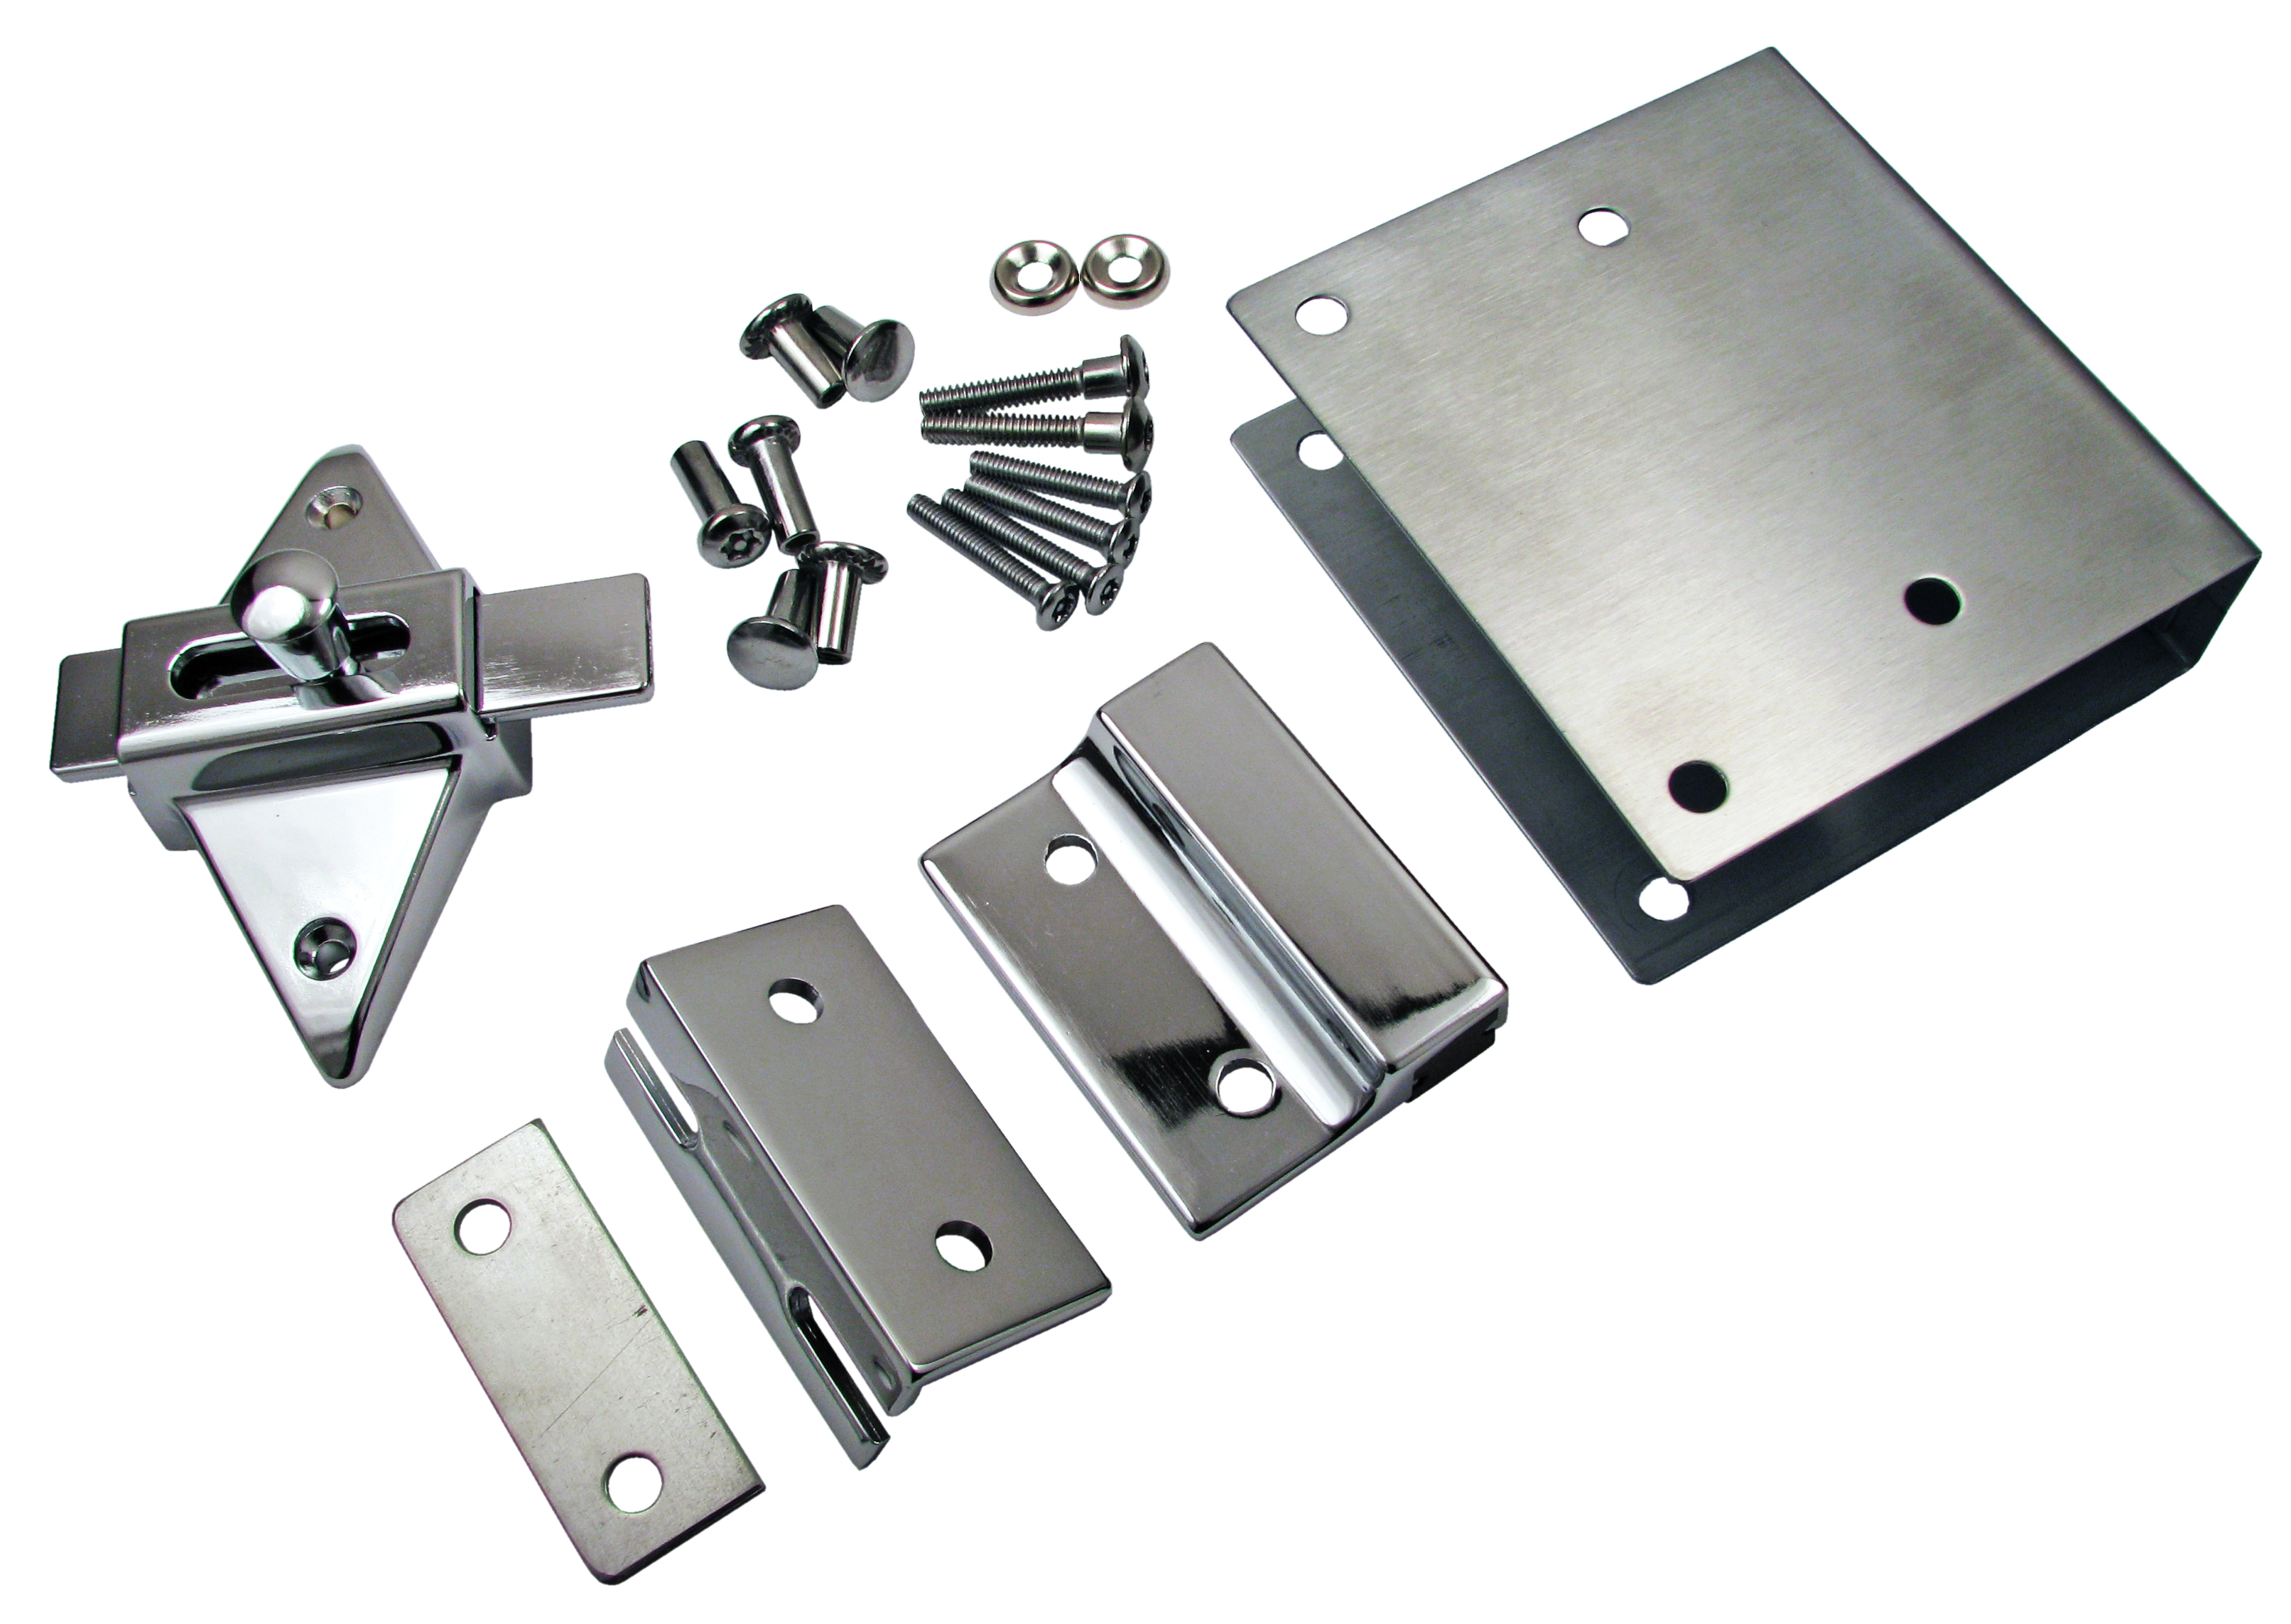 LATCH FIX IT KIT INSWING DOOR